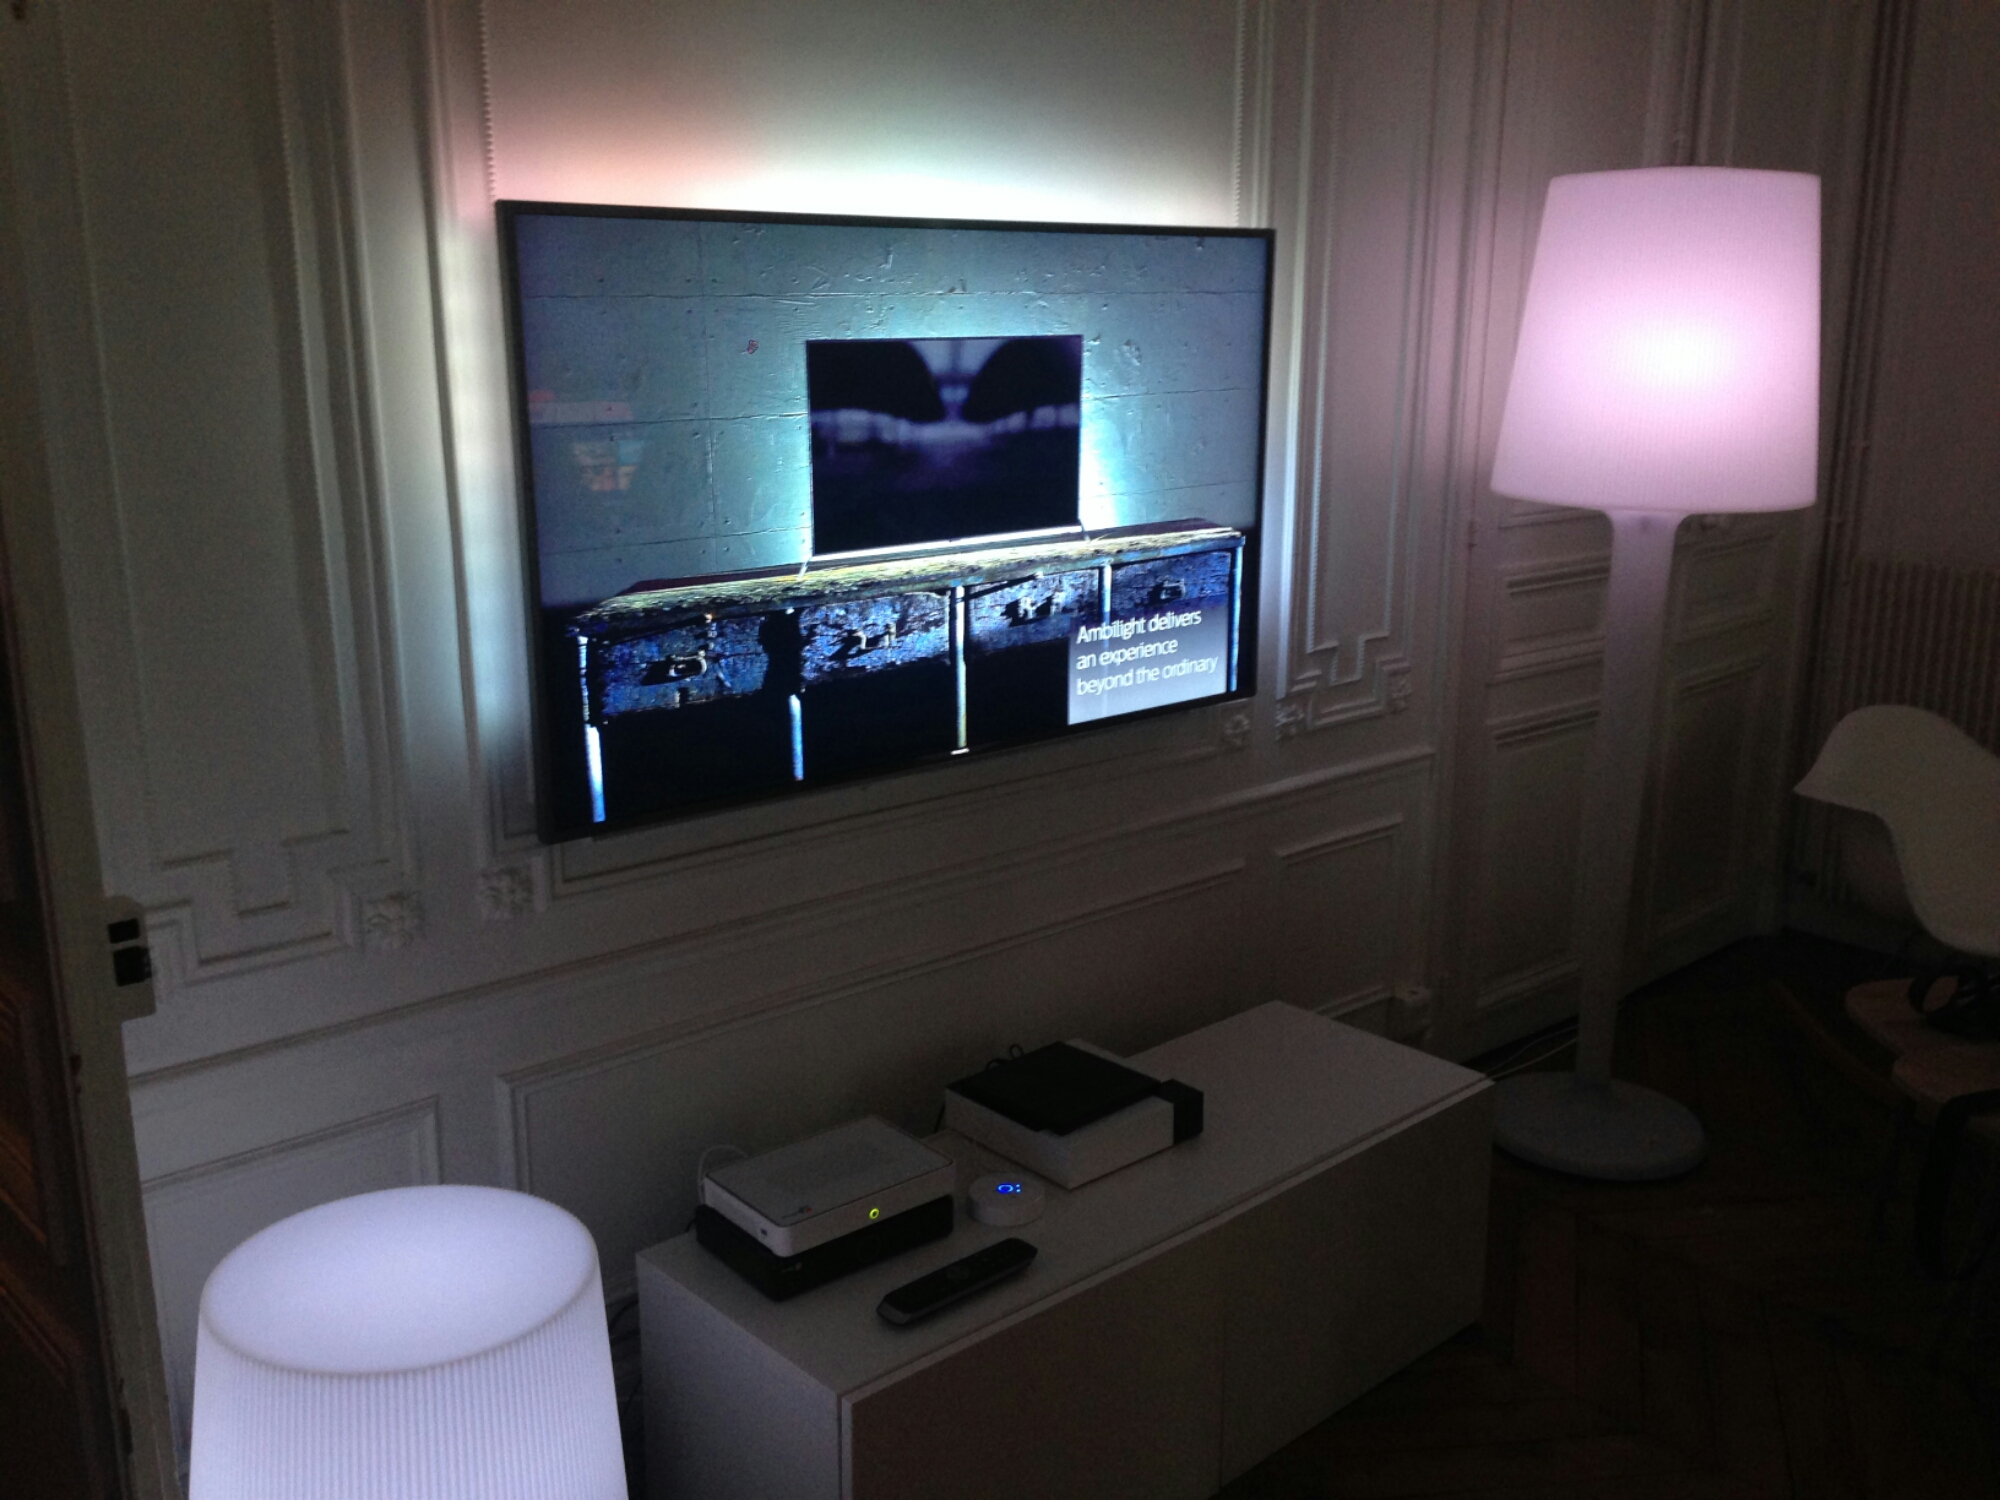 compte rendu ambilight de philips une tv qui ambiance vos murs. Black Bedroom Furniture Sets. Home Design Ideas